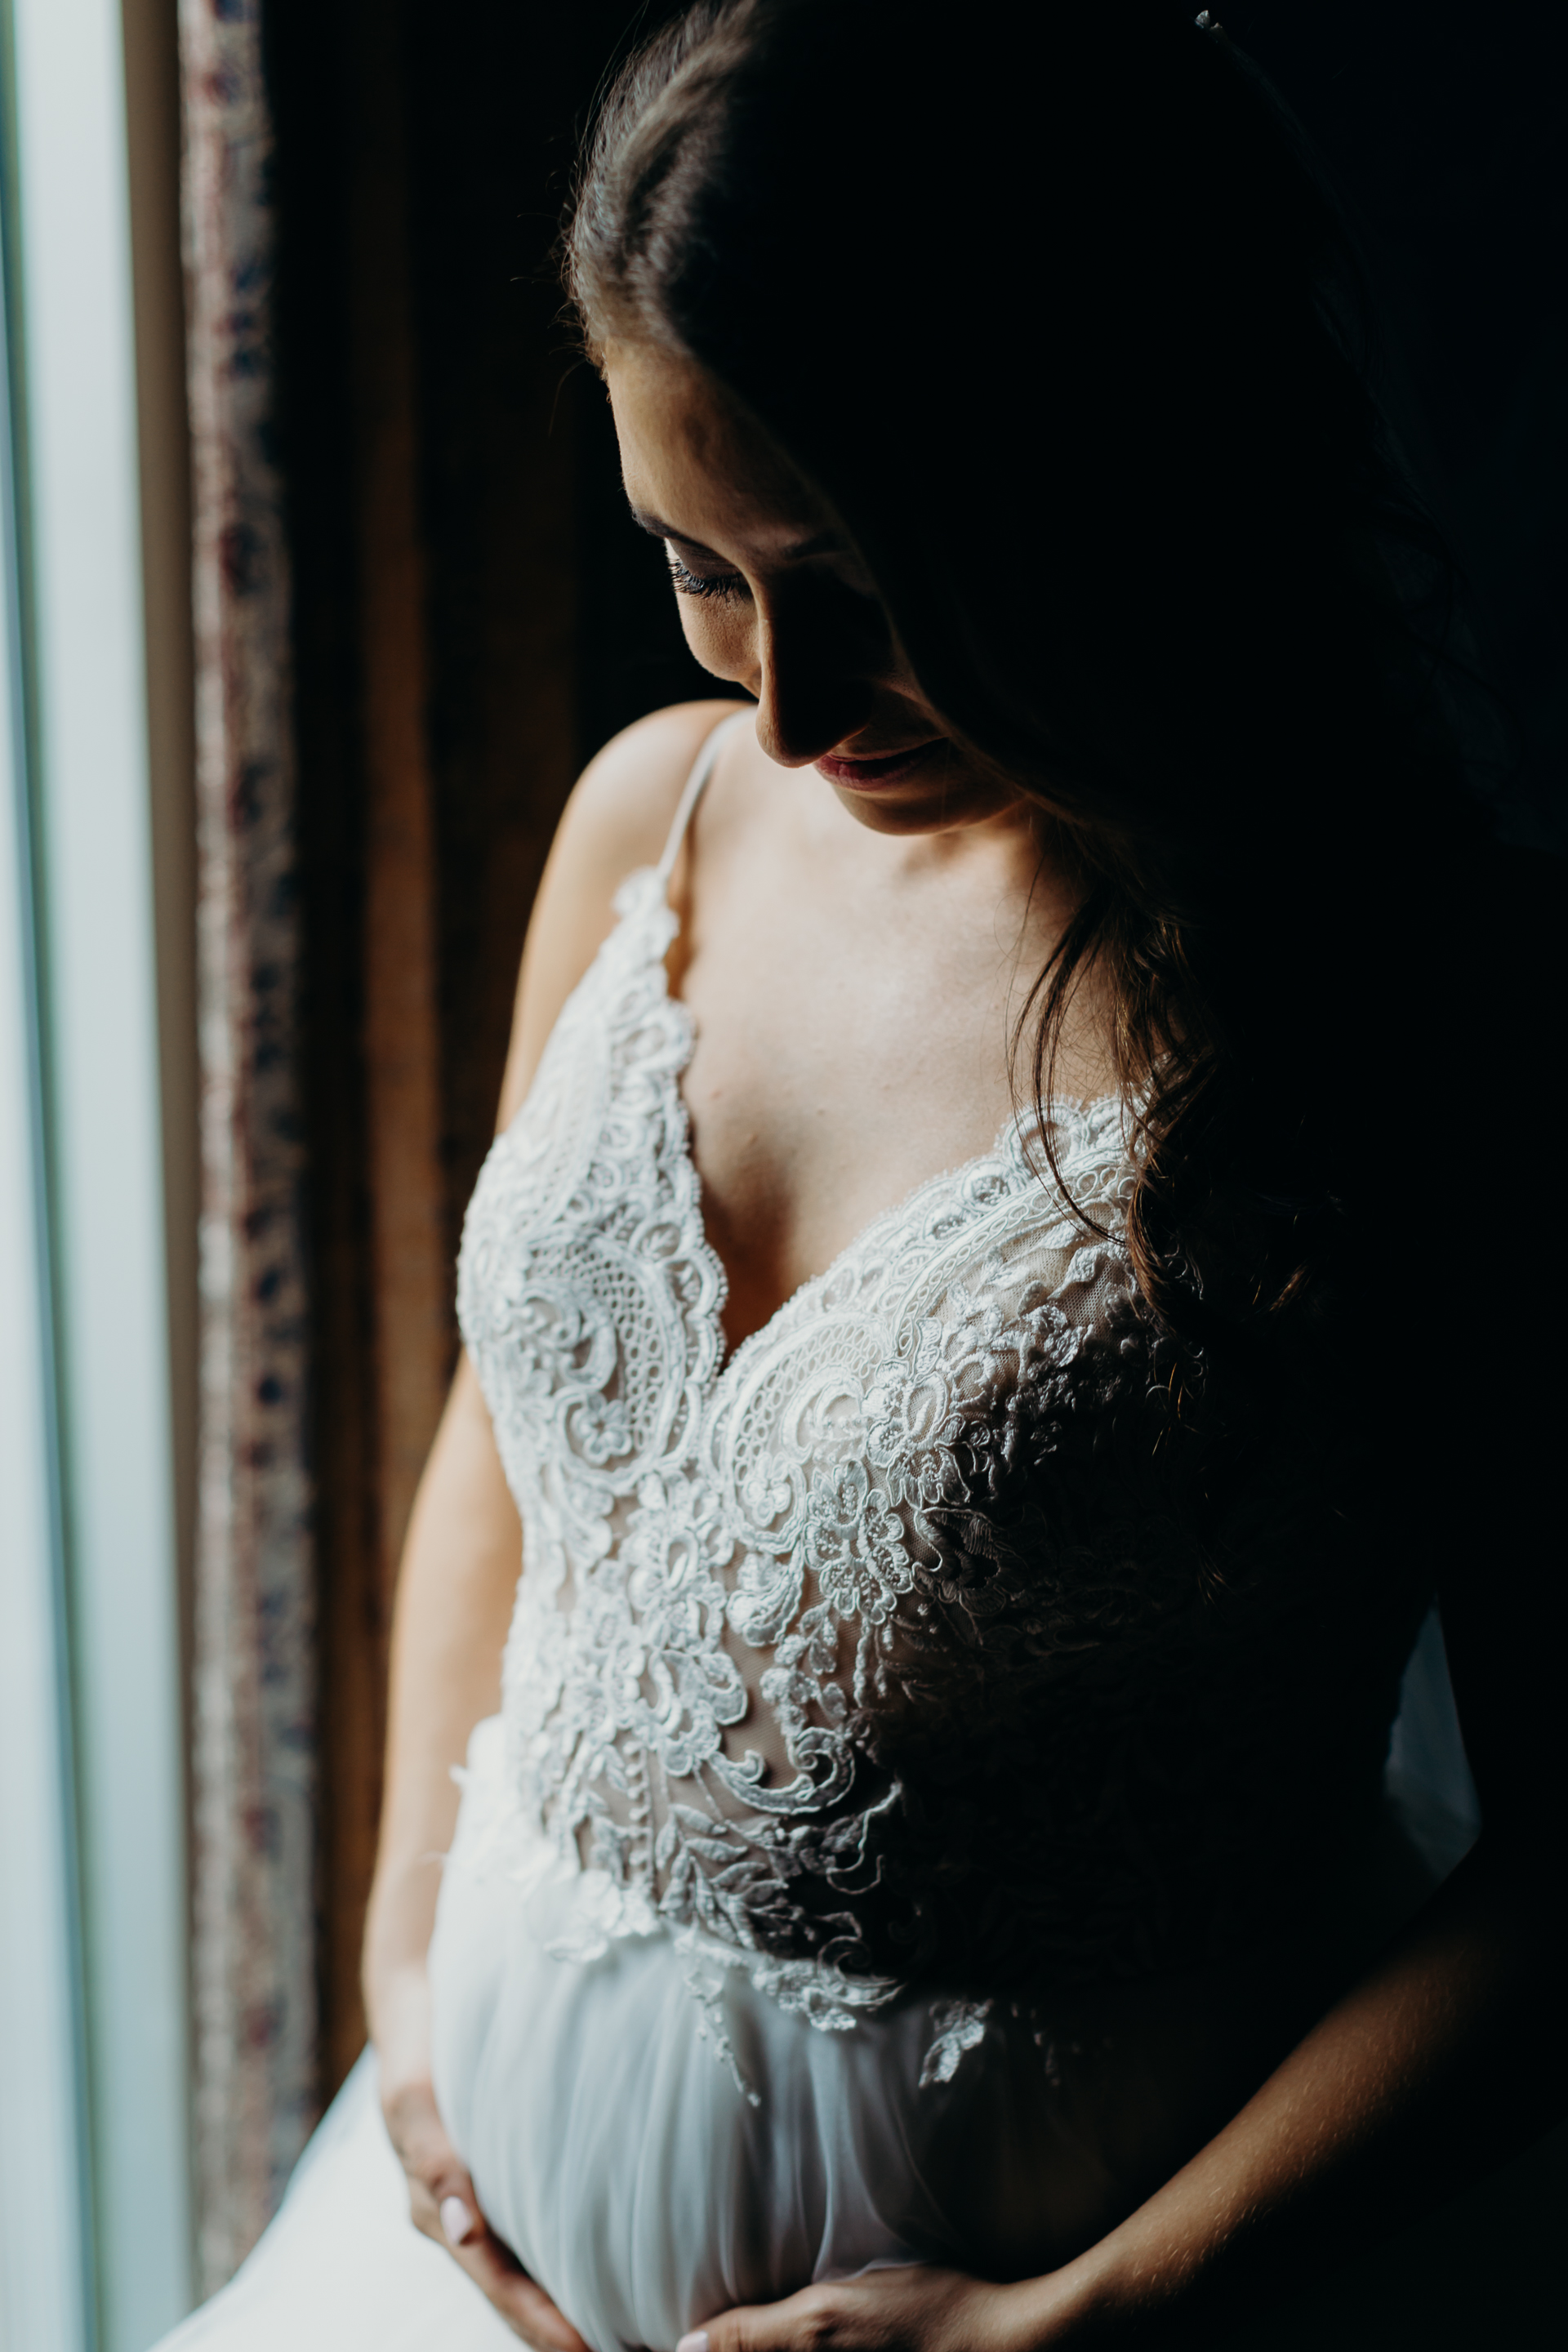 Gianna Keiko Atlanta San Francisco NYC Wedding Engagement Wedding Elopement Photographer_Sneak Peek-9.jpg